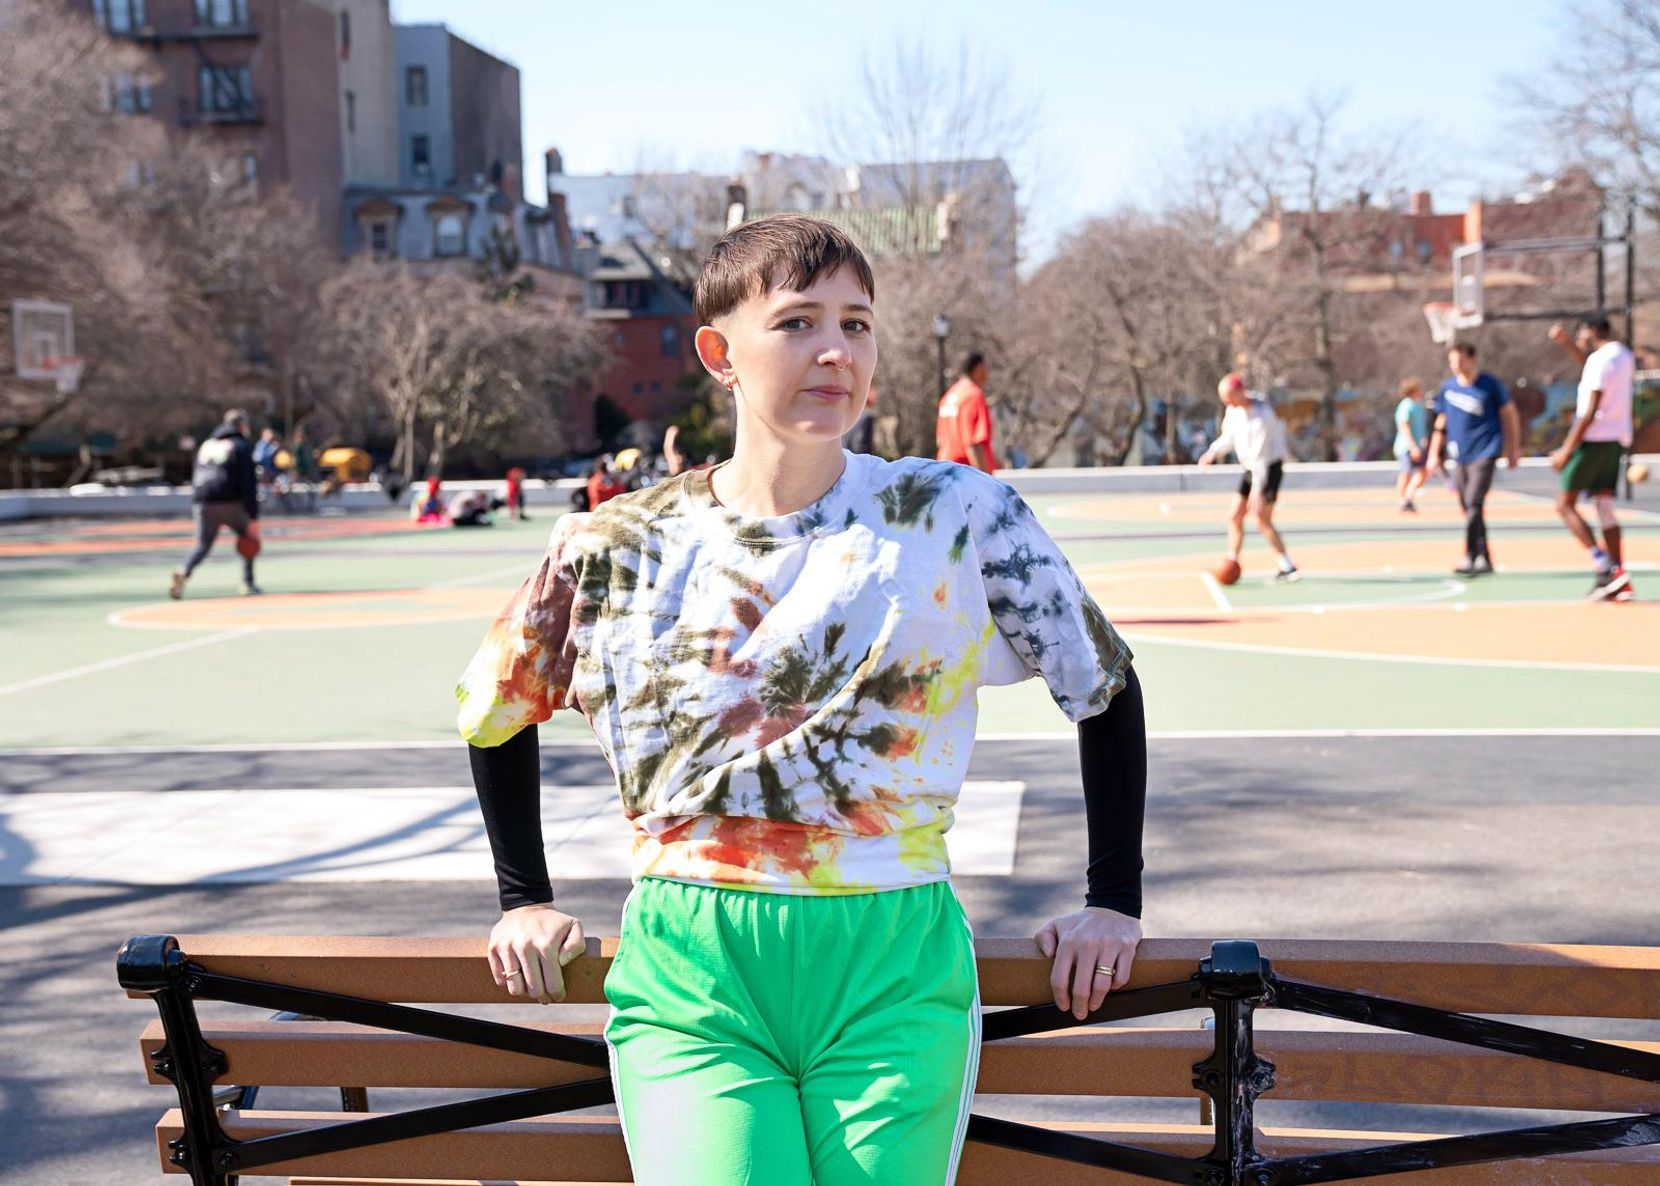 Katy Pyle leans on a park bench dressed in bright green sweatpants and a white tie-dye shirt